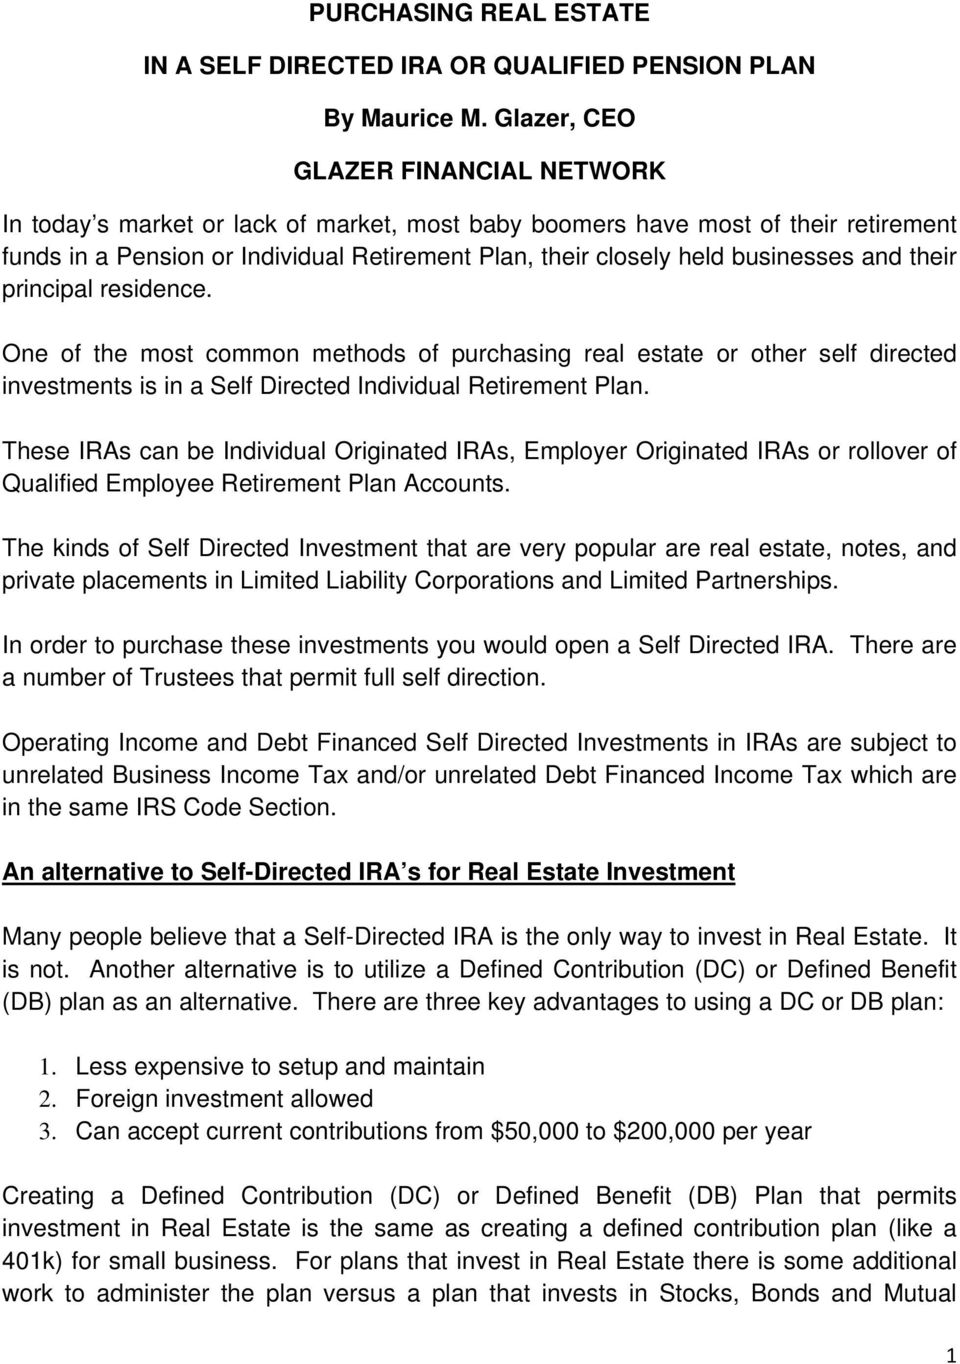 businesses and their principal residence. One of the most common methods of purchasing real estate or other self directed investments is in a Self Directed Individual Retirement Plan.